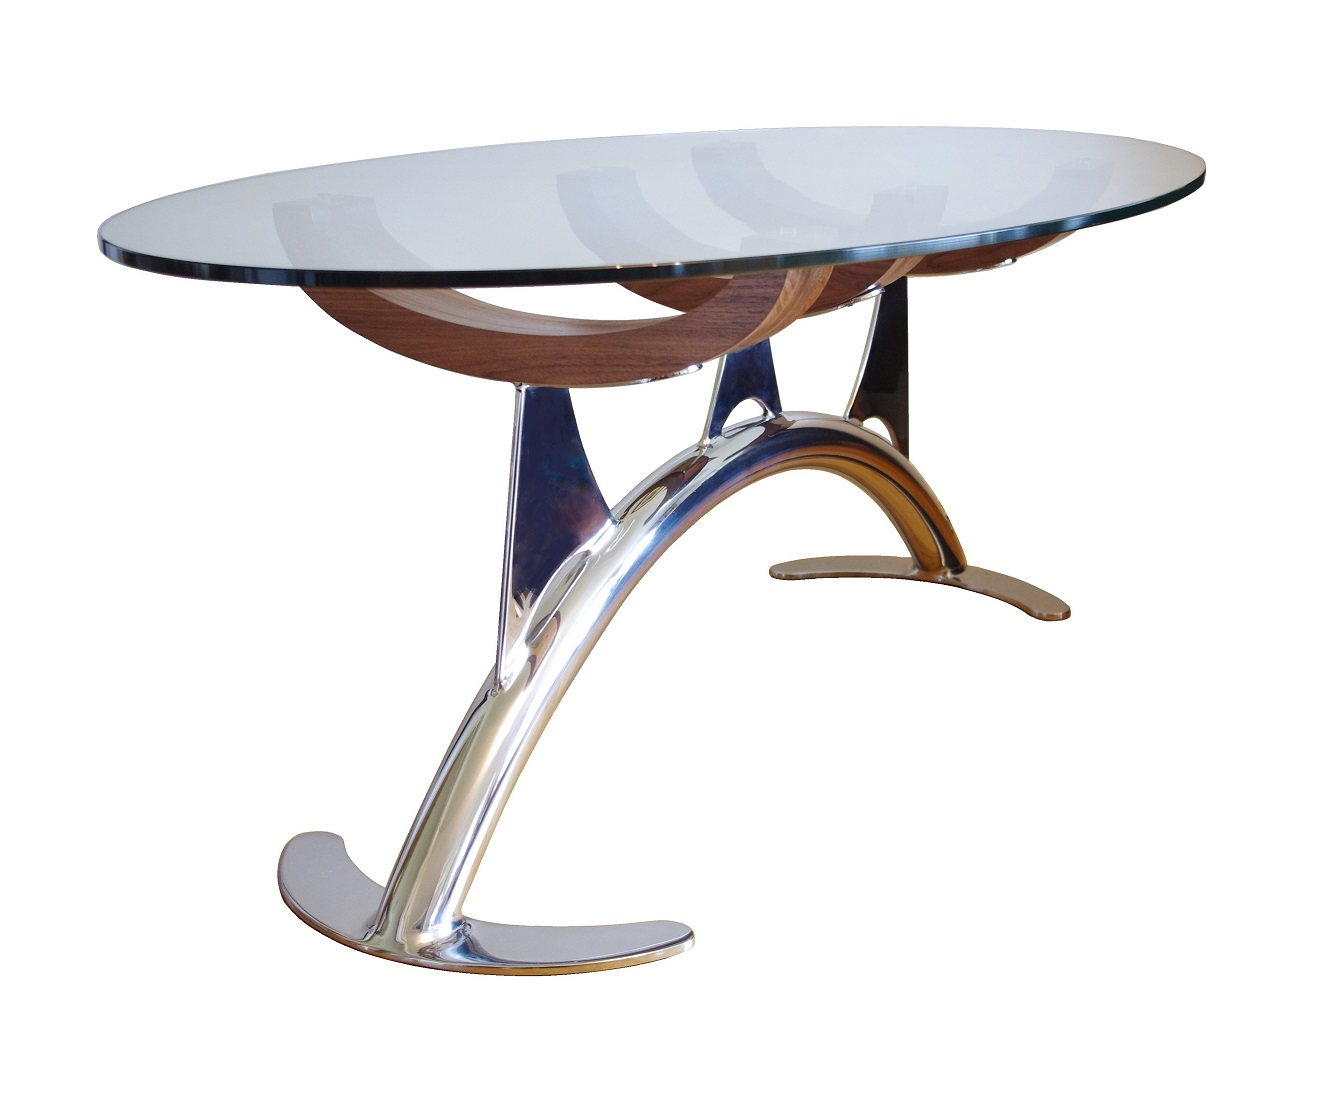 glass coffee table bespoke modern handmade tables chris bose. Black Bedroom Furniture Sets. Home Design Ideas